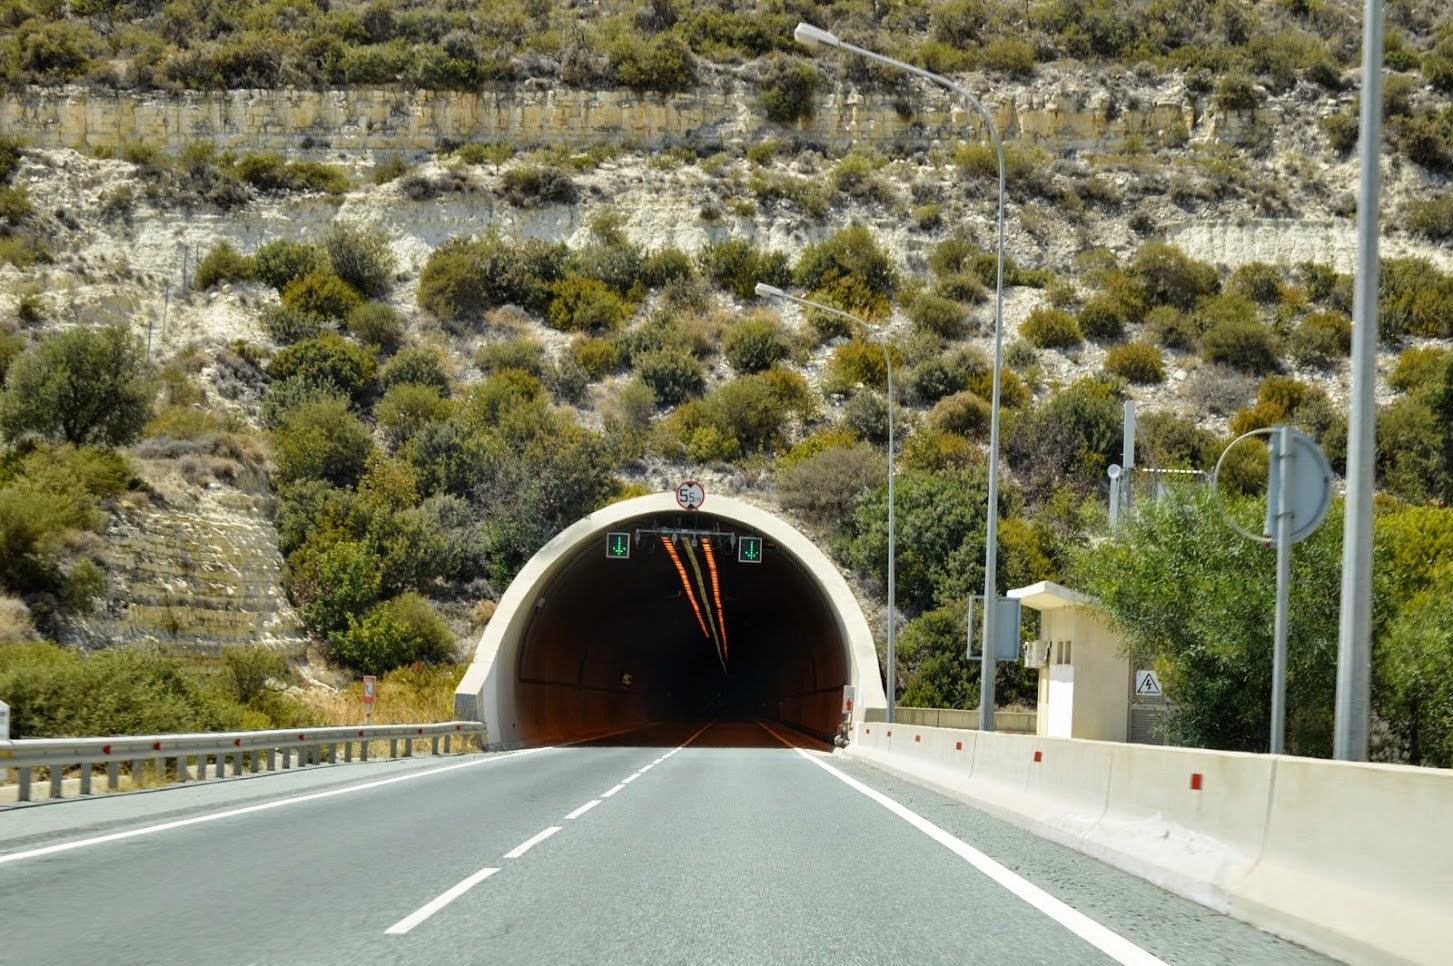 Paphoos tunnel in Cyprus.